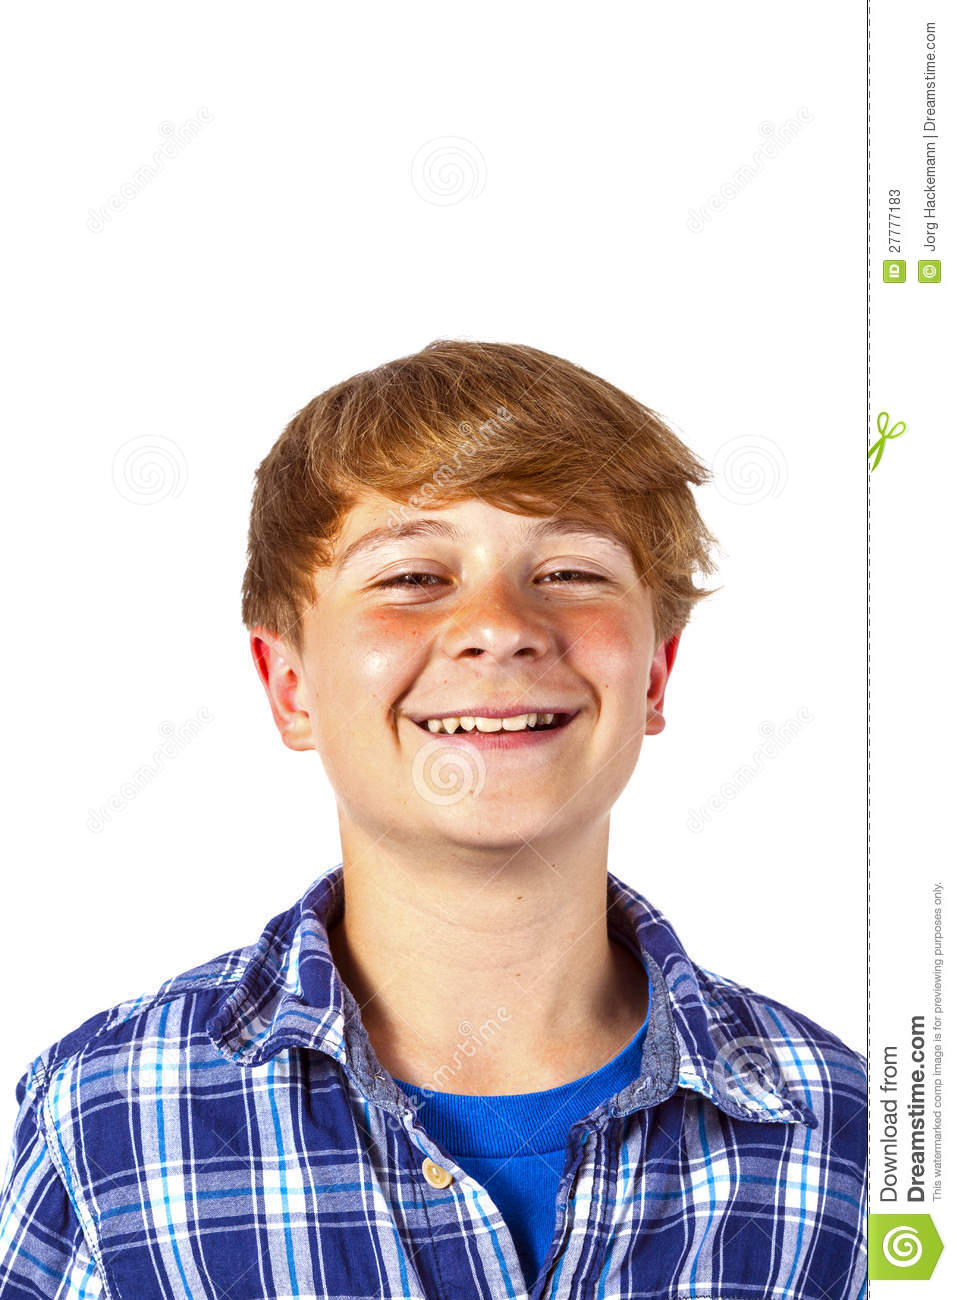 Happy Teen By Crumbling Wall Stock Image: Happy Teen Boy Is Laughing Stock Photos